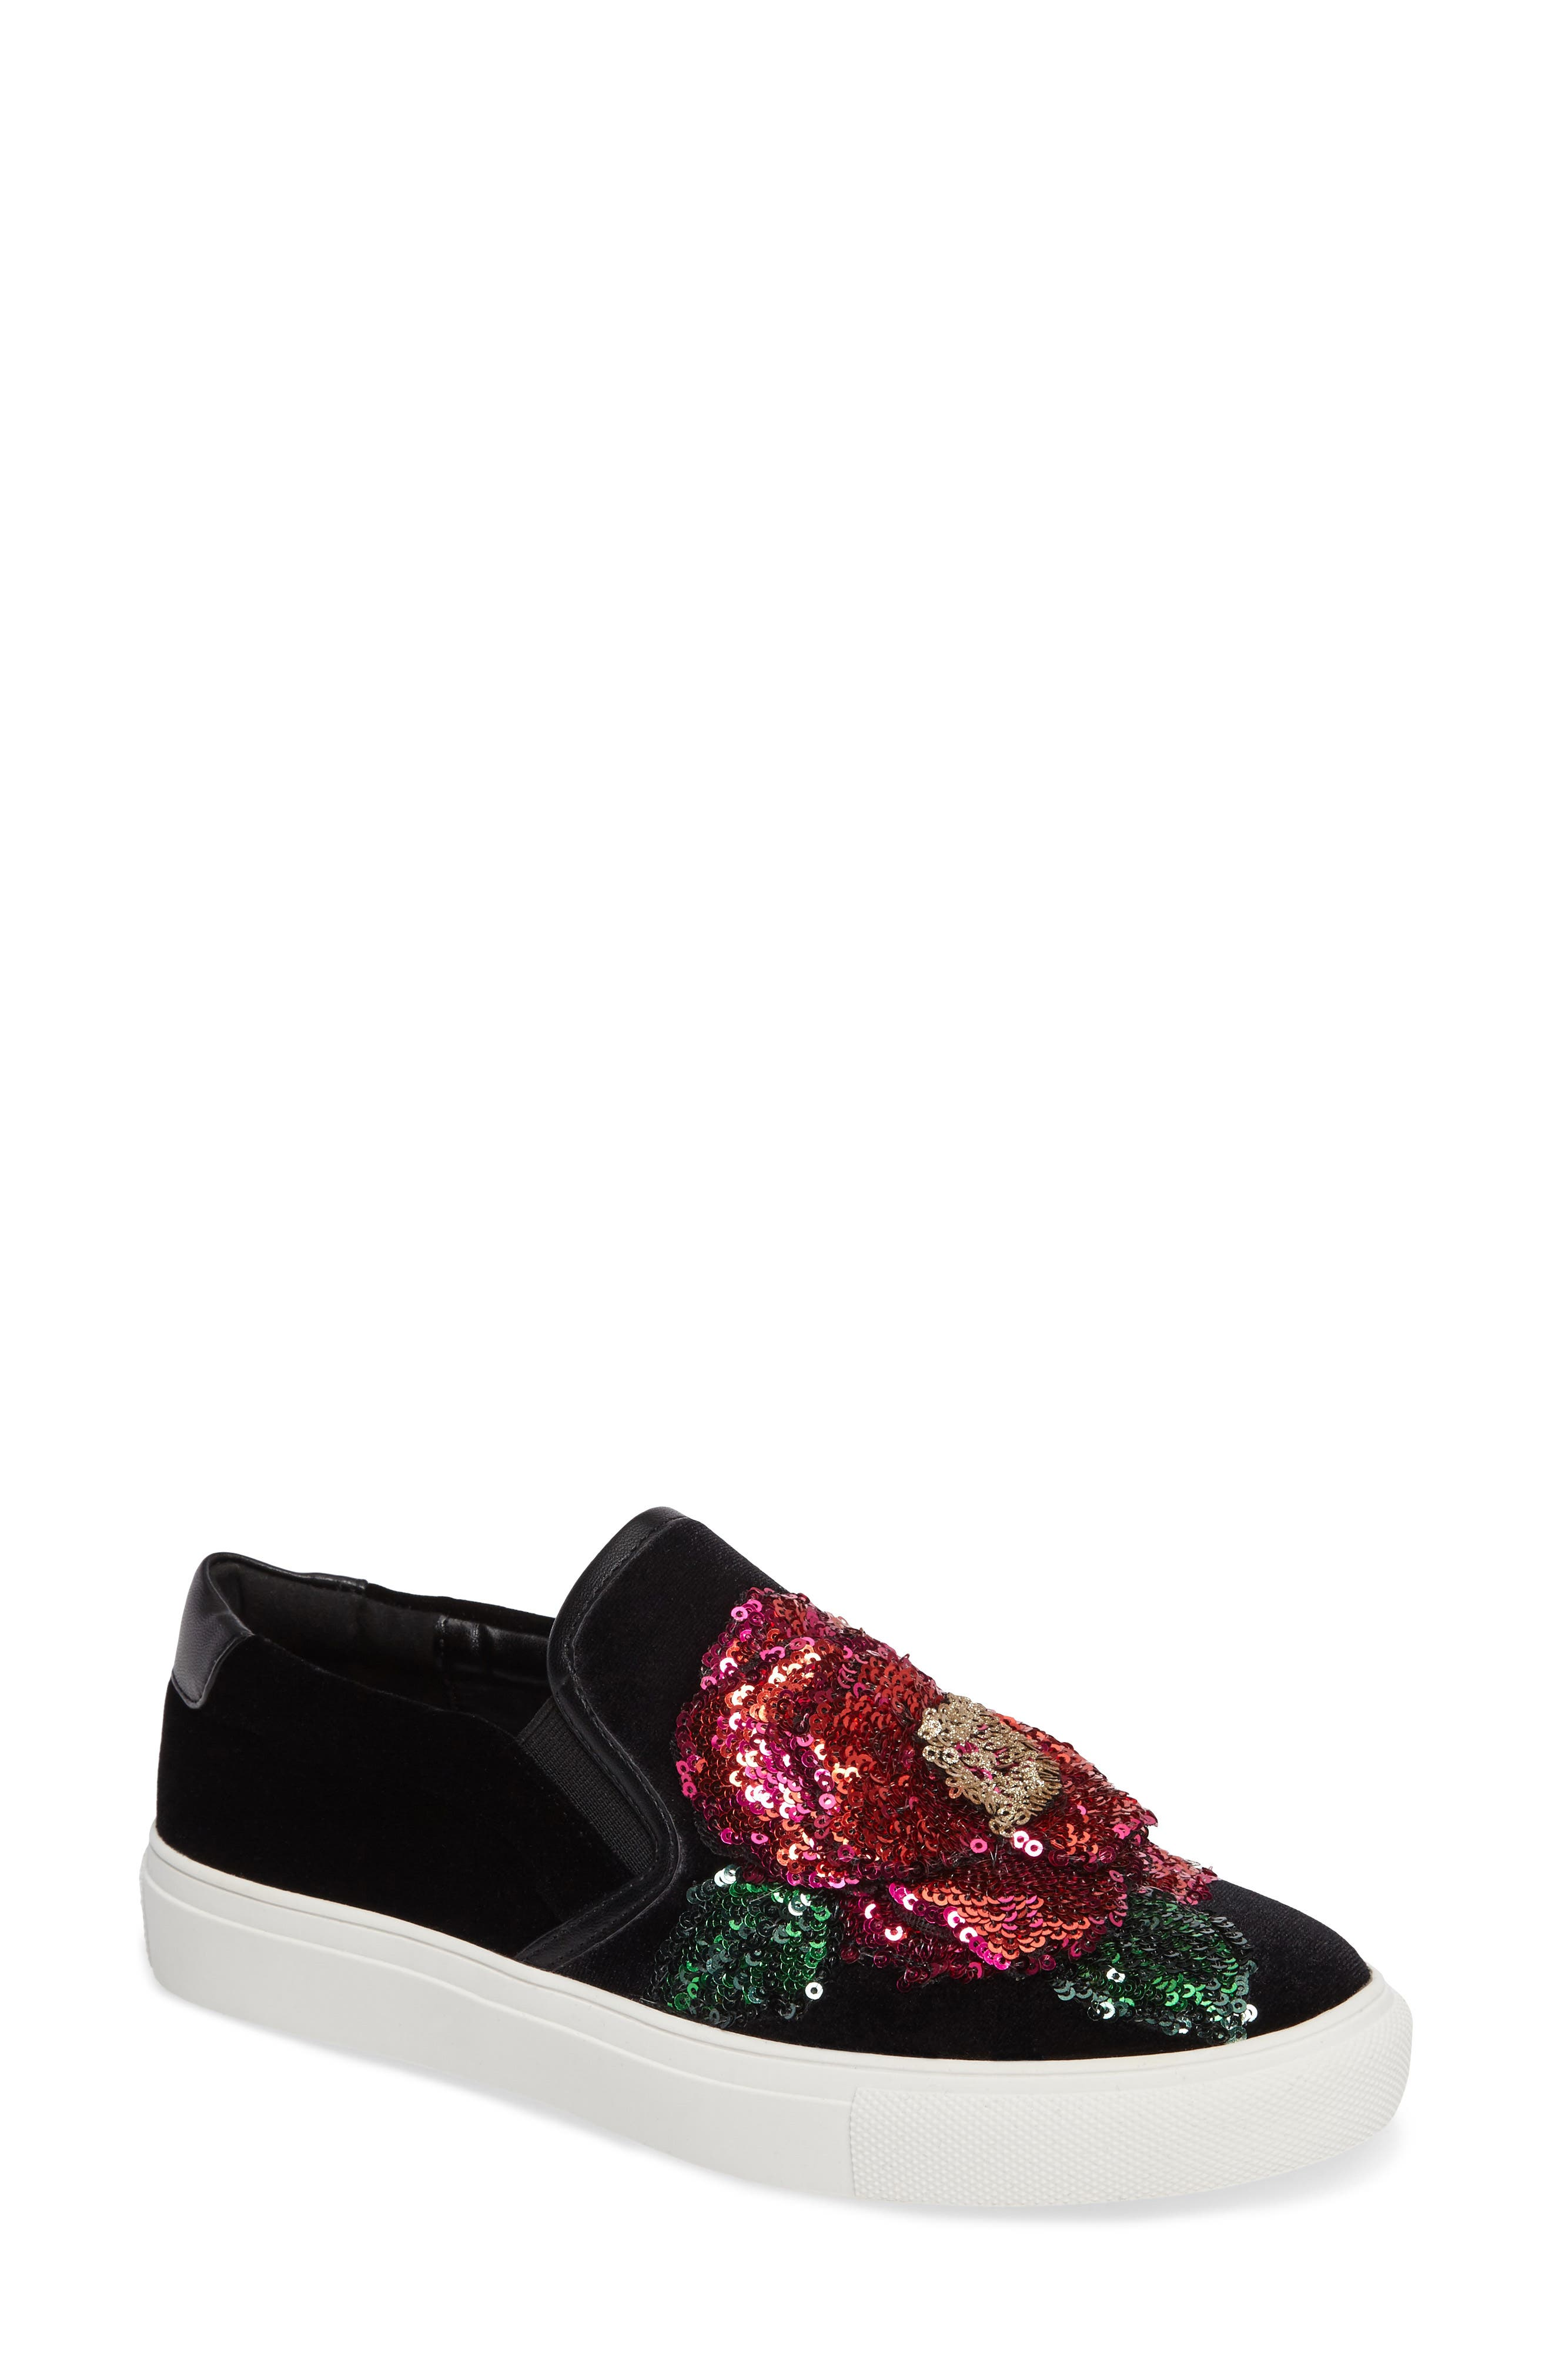 Steve Madden Aloha Slip-On Sneaker (Women)